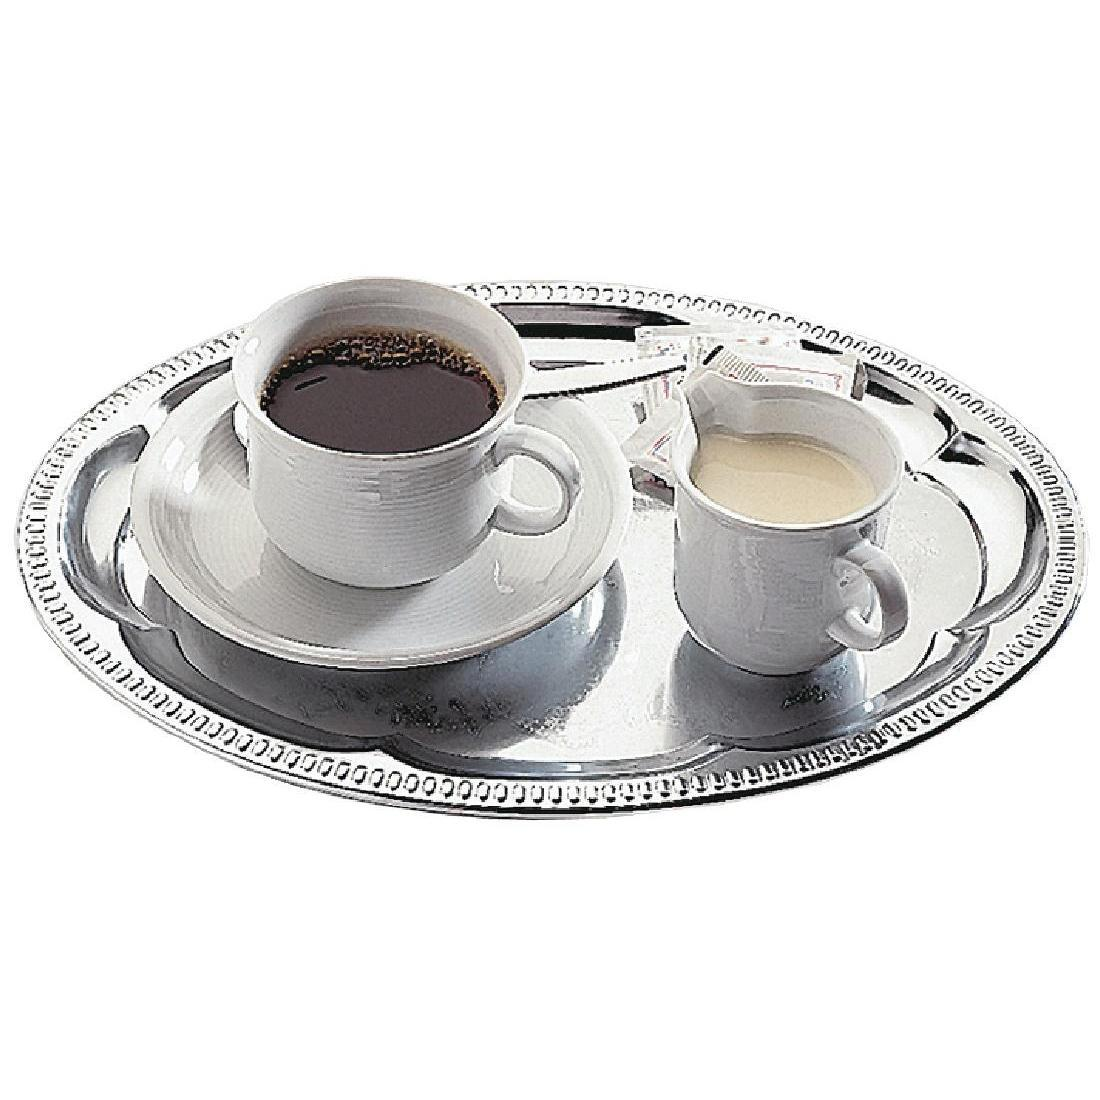 APS Chrome-Plated Stainless Steel Oval Tea Tray 300mm - Each - T765